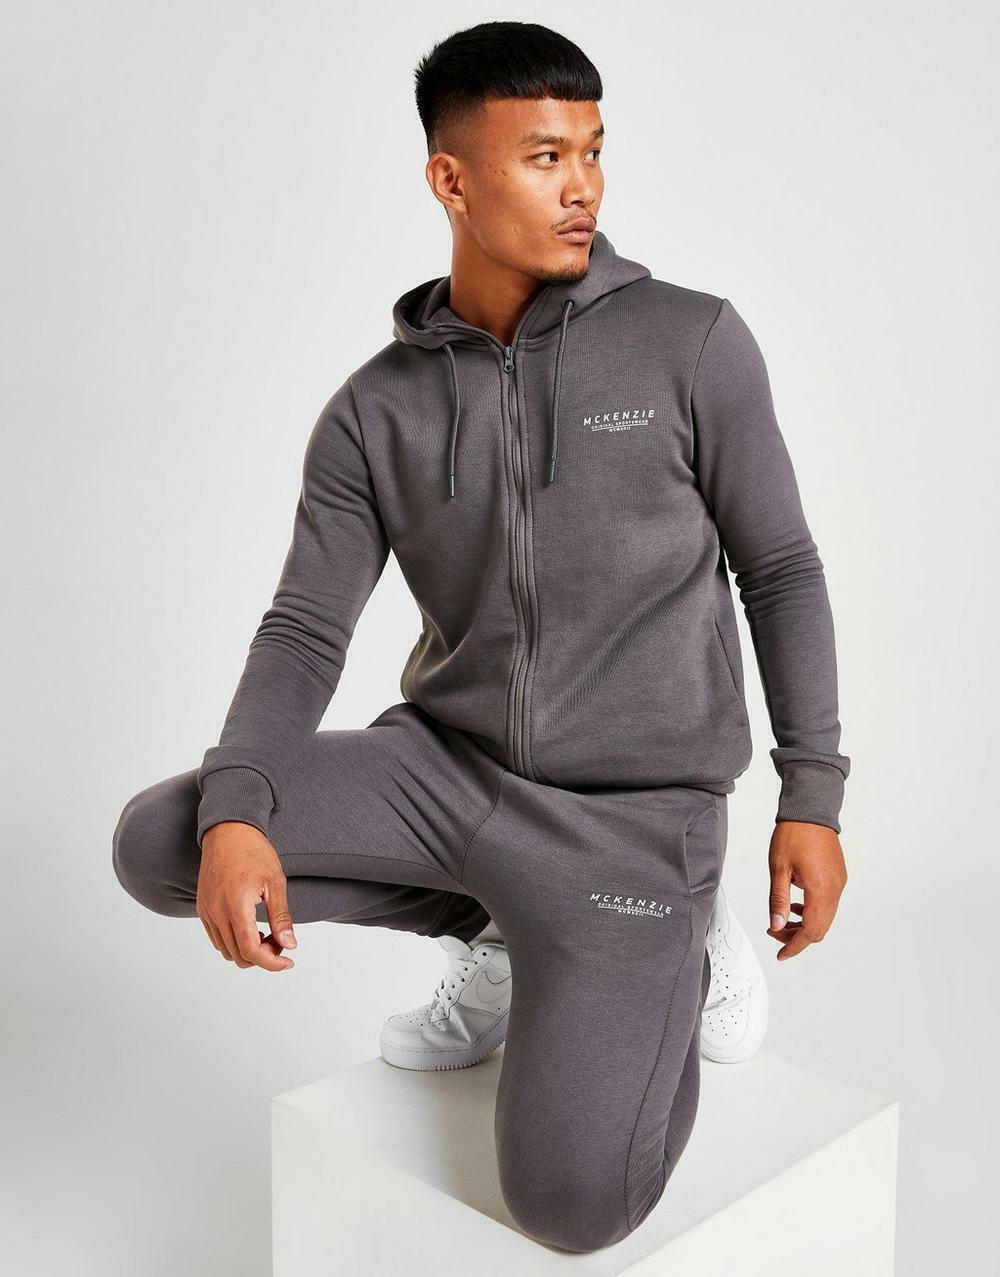 New McKenzie Men's Essential Tracksuit from JD Outlet